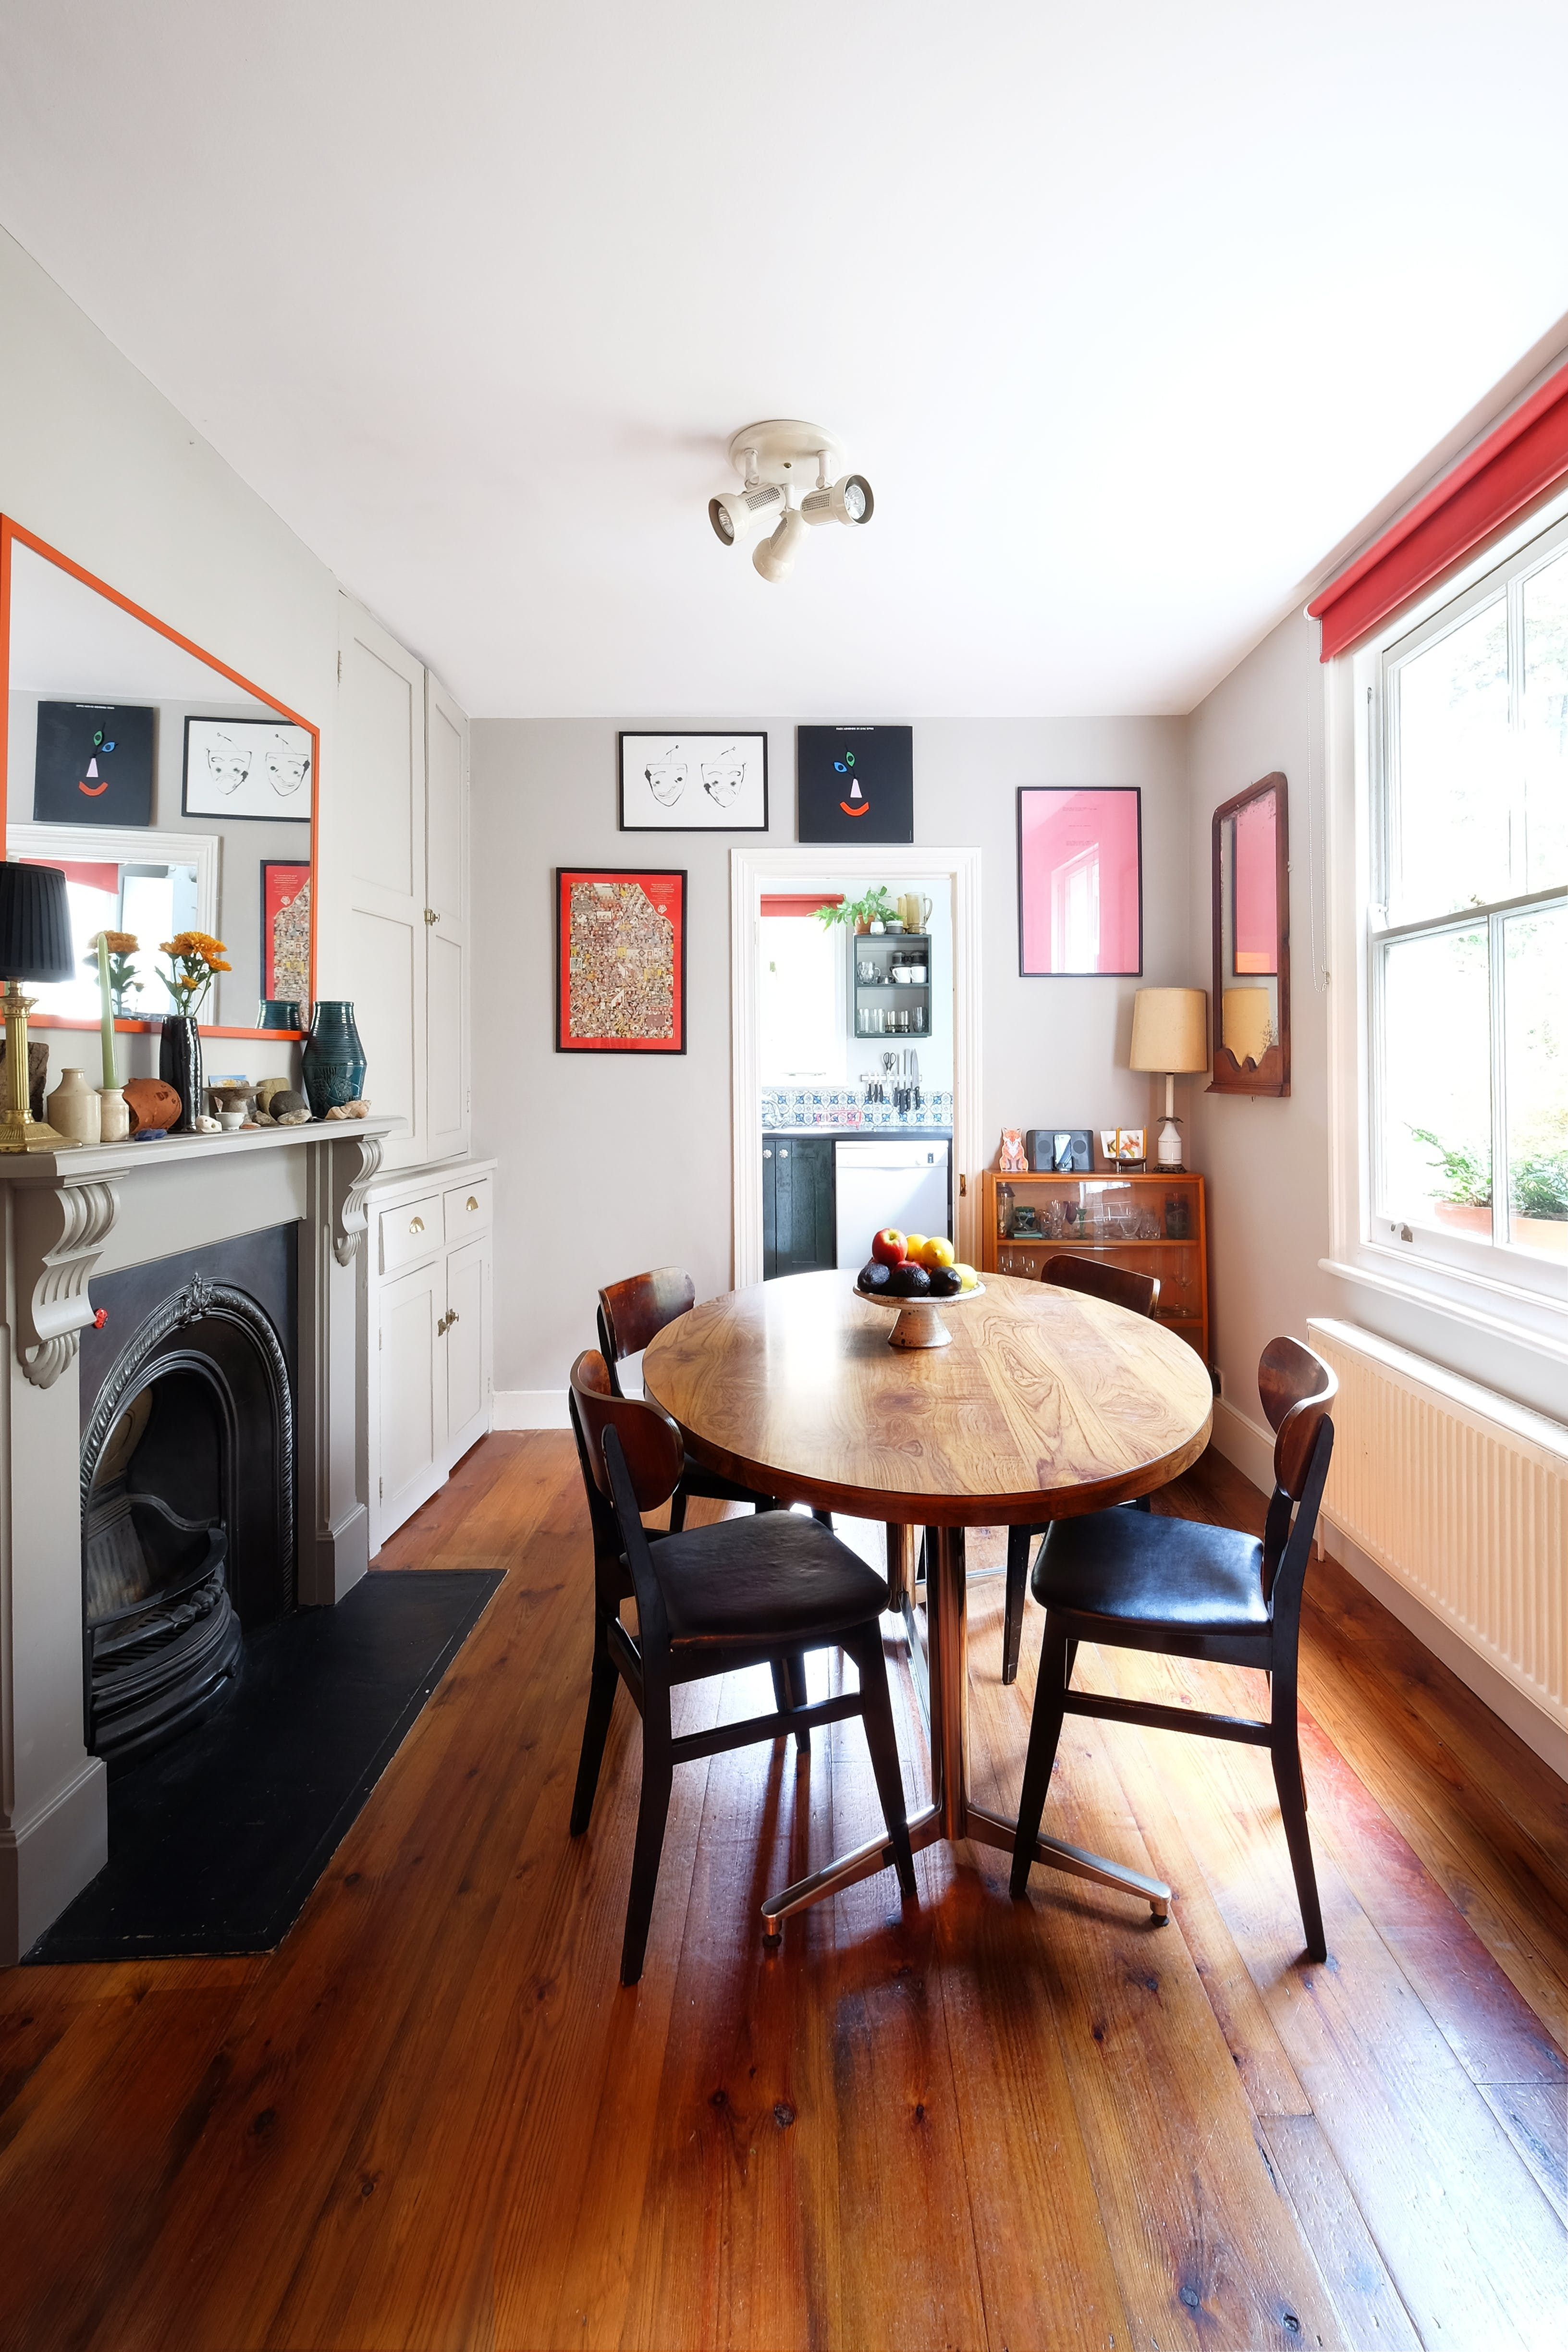 70s Inspired Style In South East London Home Rooms Home Decor